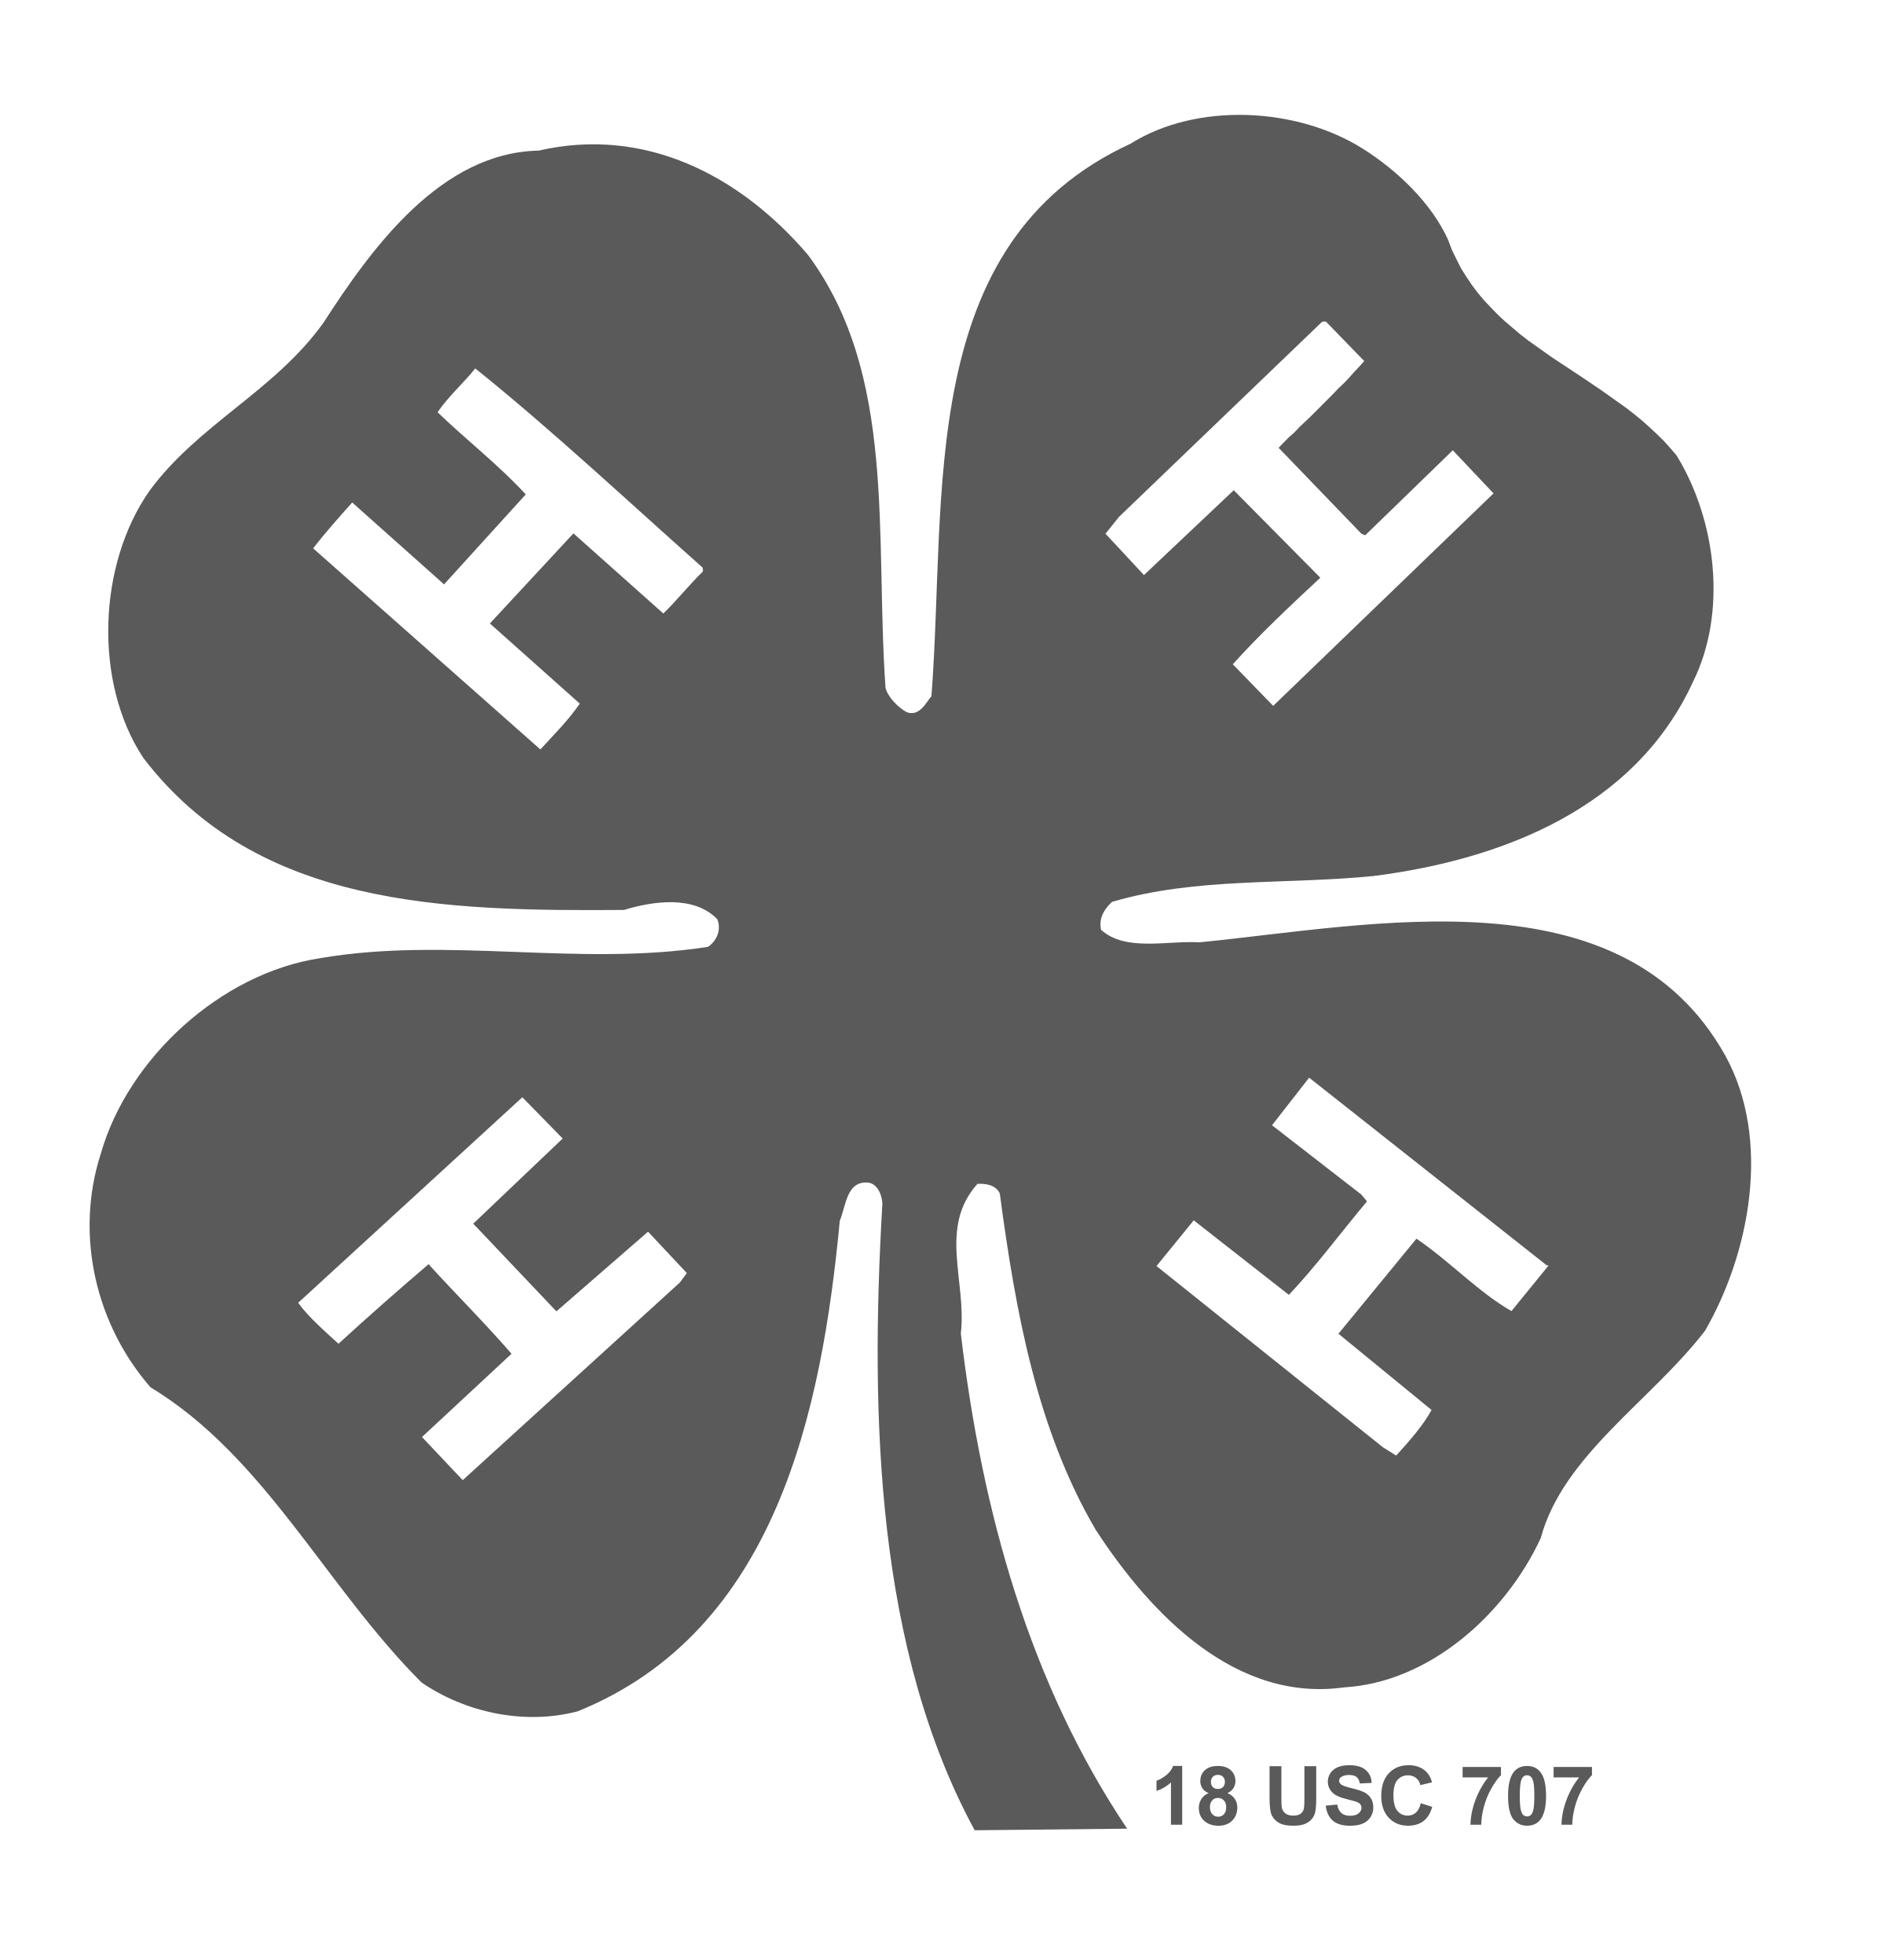 4H logo black and white (With images) Logos